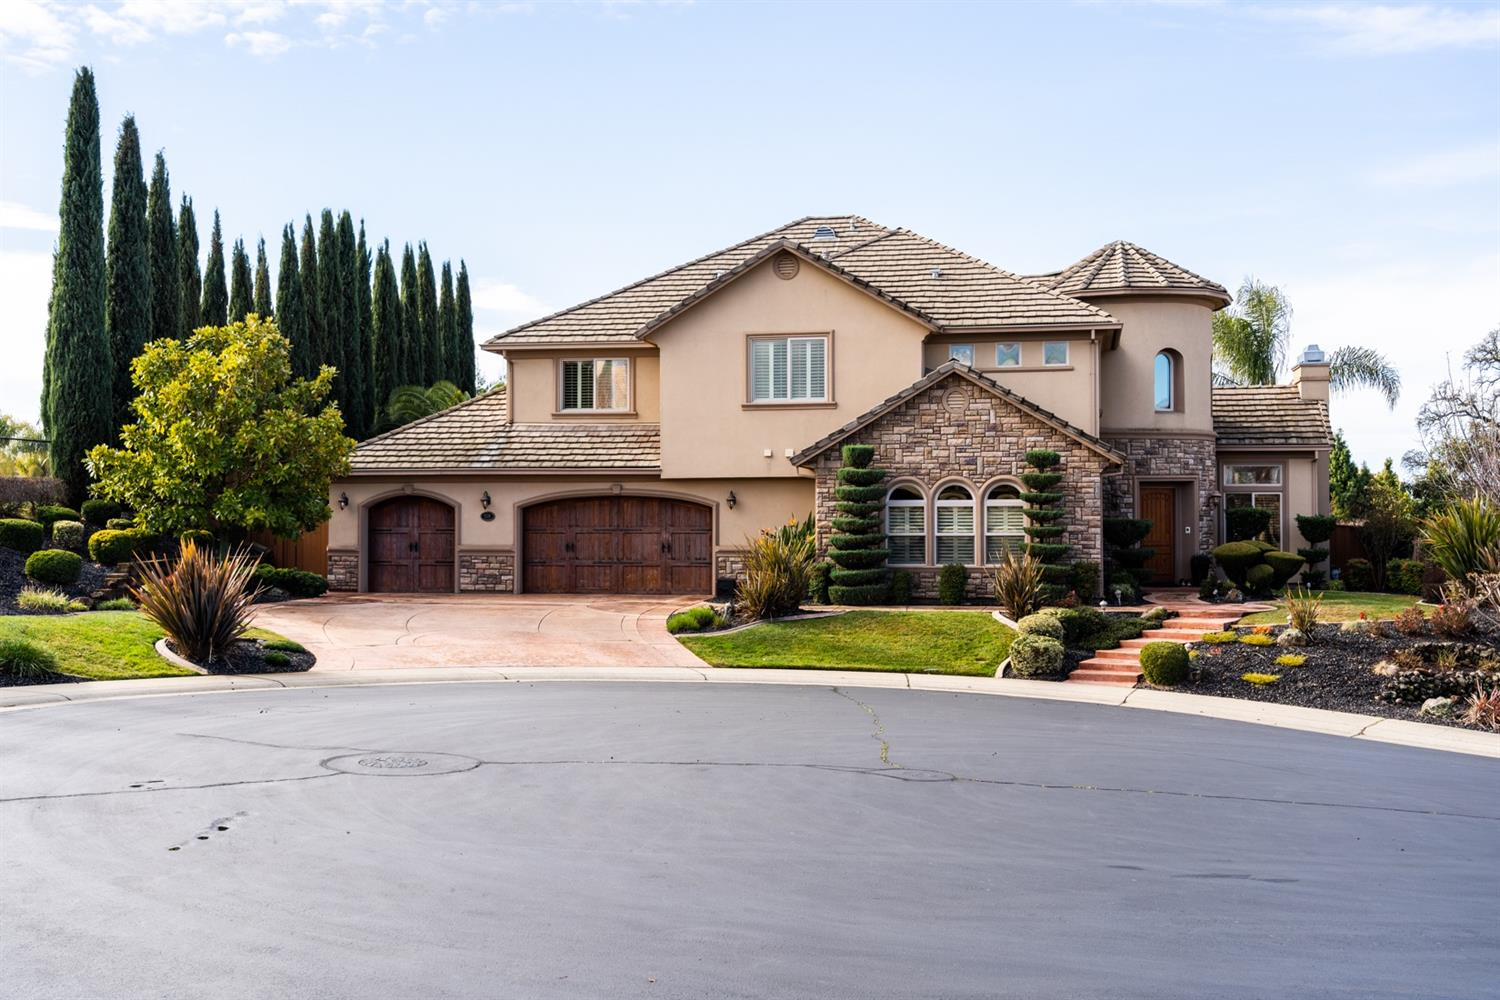 Photo of 108 Roberts Place, Roseville, CA 95661